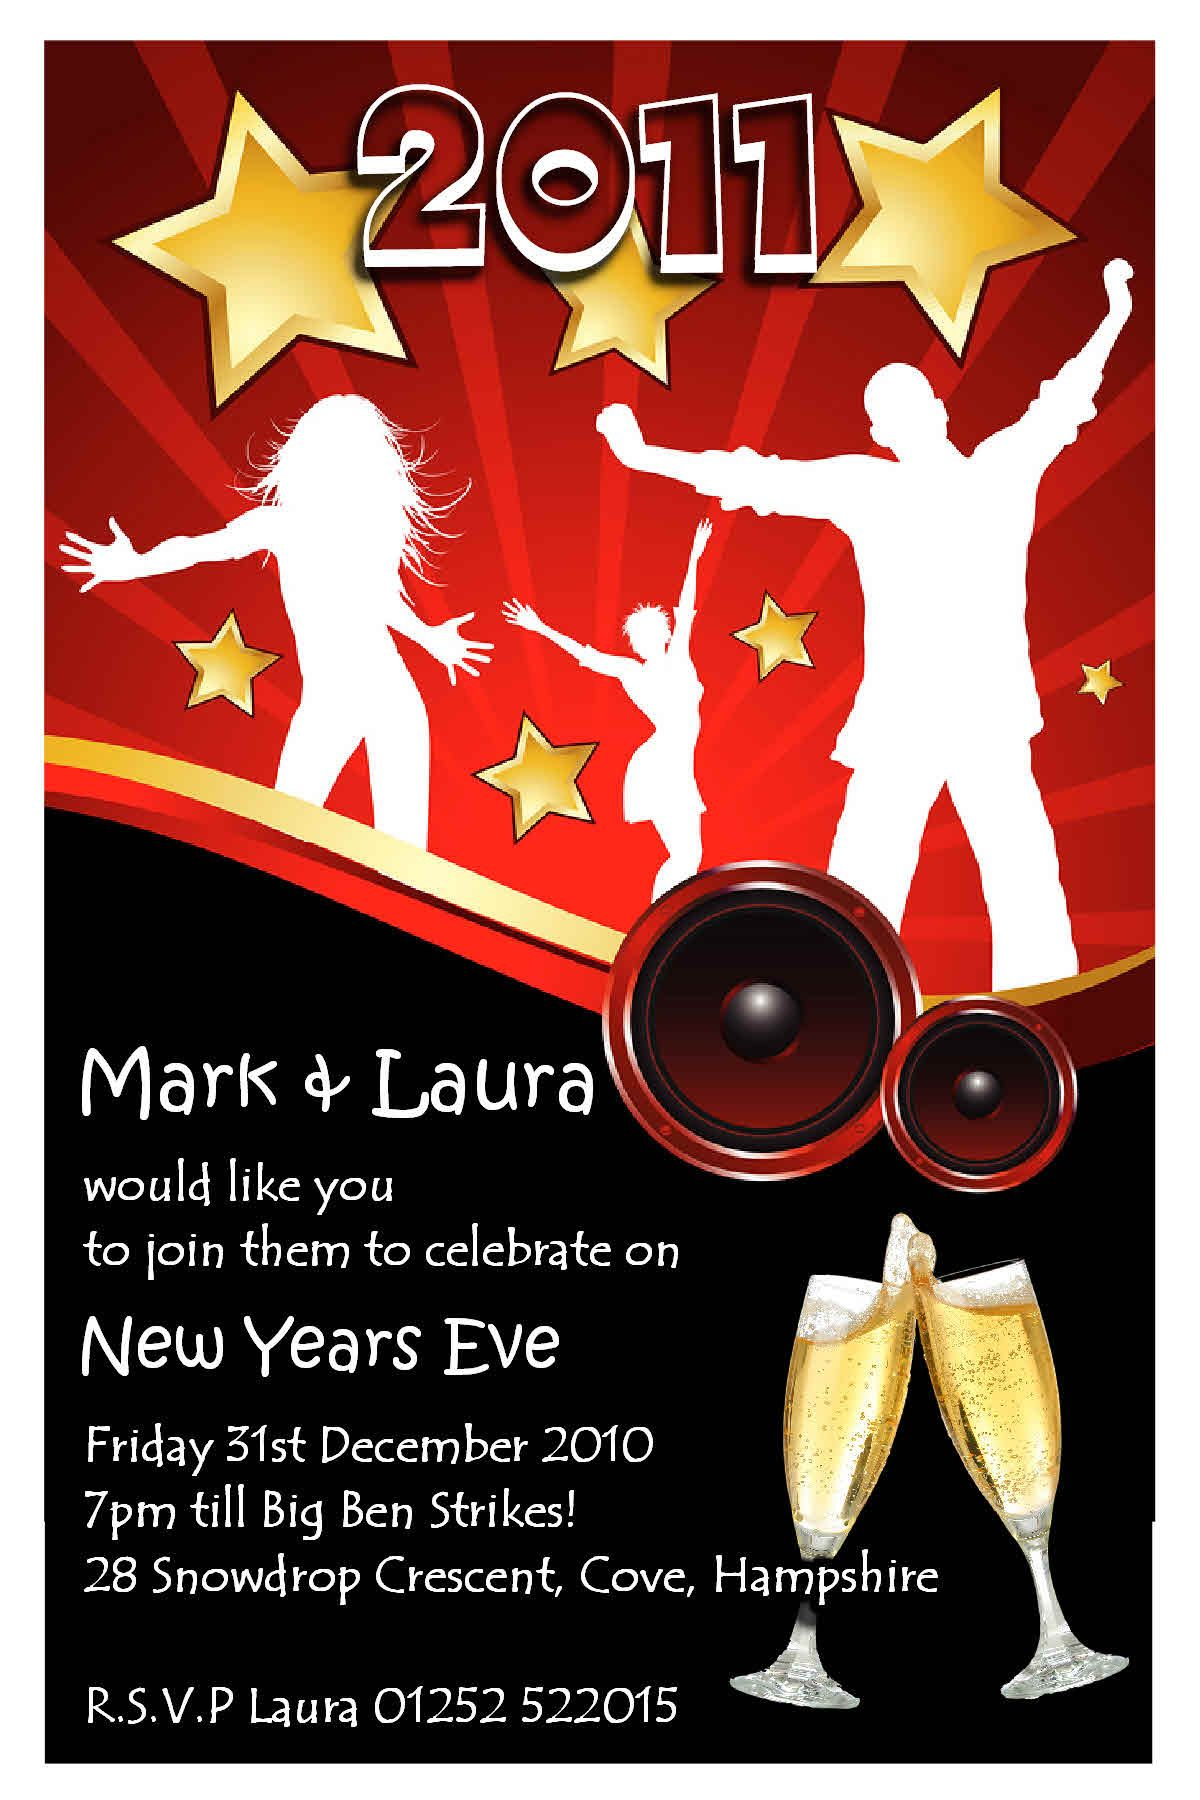 10 personalised new year party invitations, 1200x1800 in 187.1kb, Party invitations